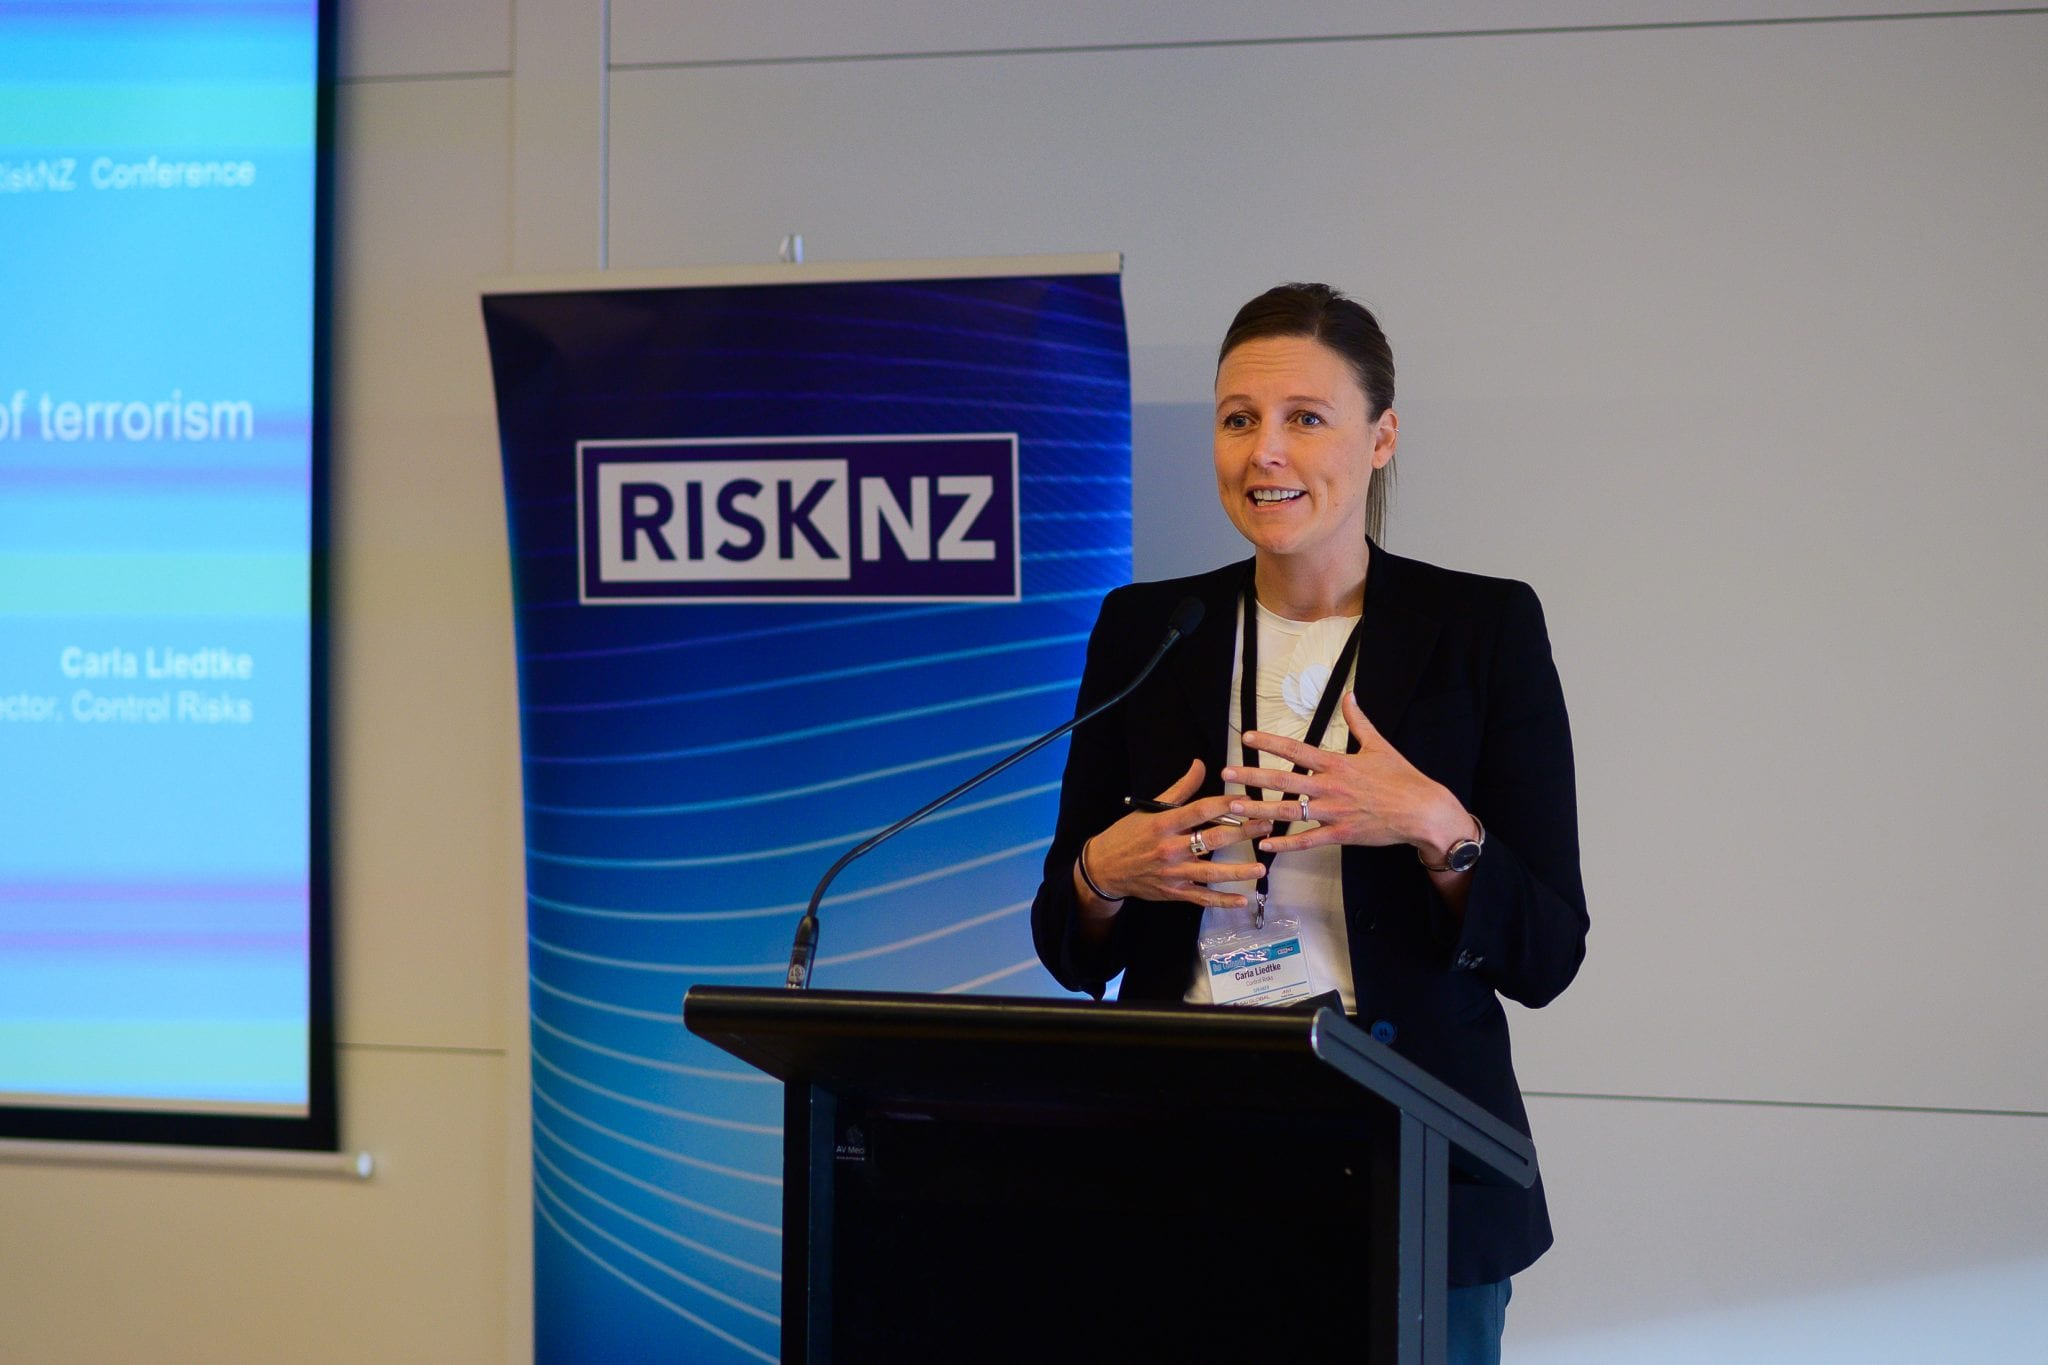 Carla Liedtke, Director, Control Risks Topic - Global Risks 2019